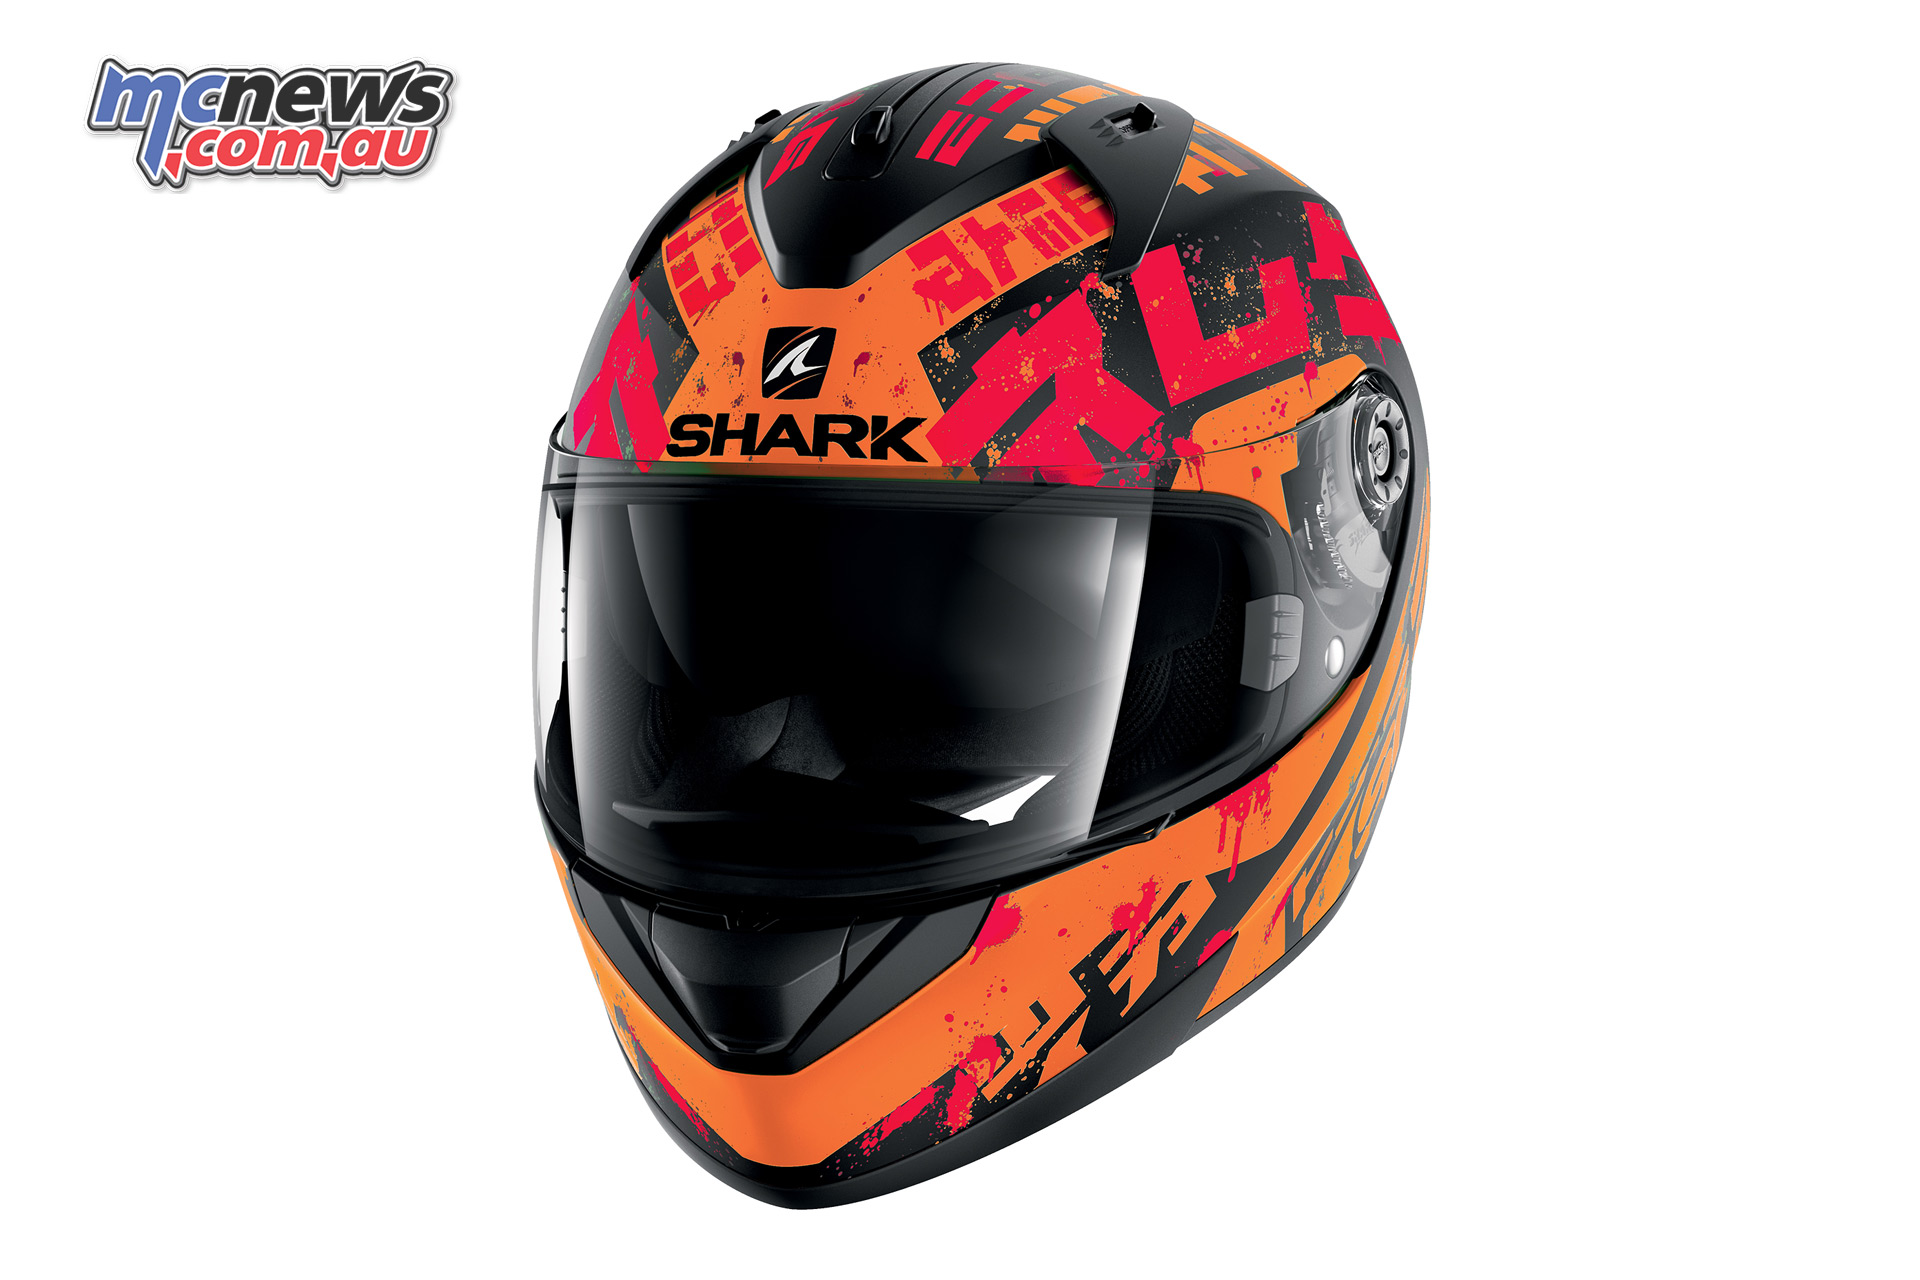 Shark Ridill helmet